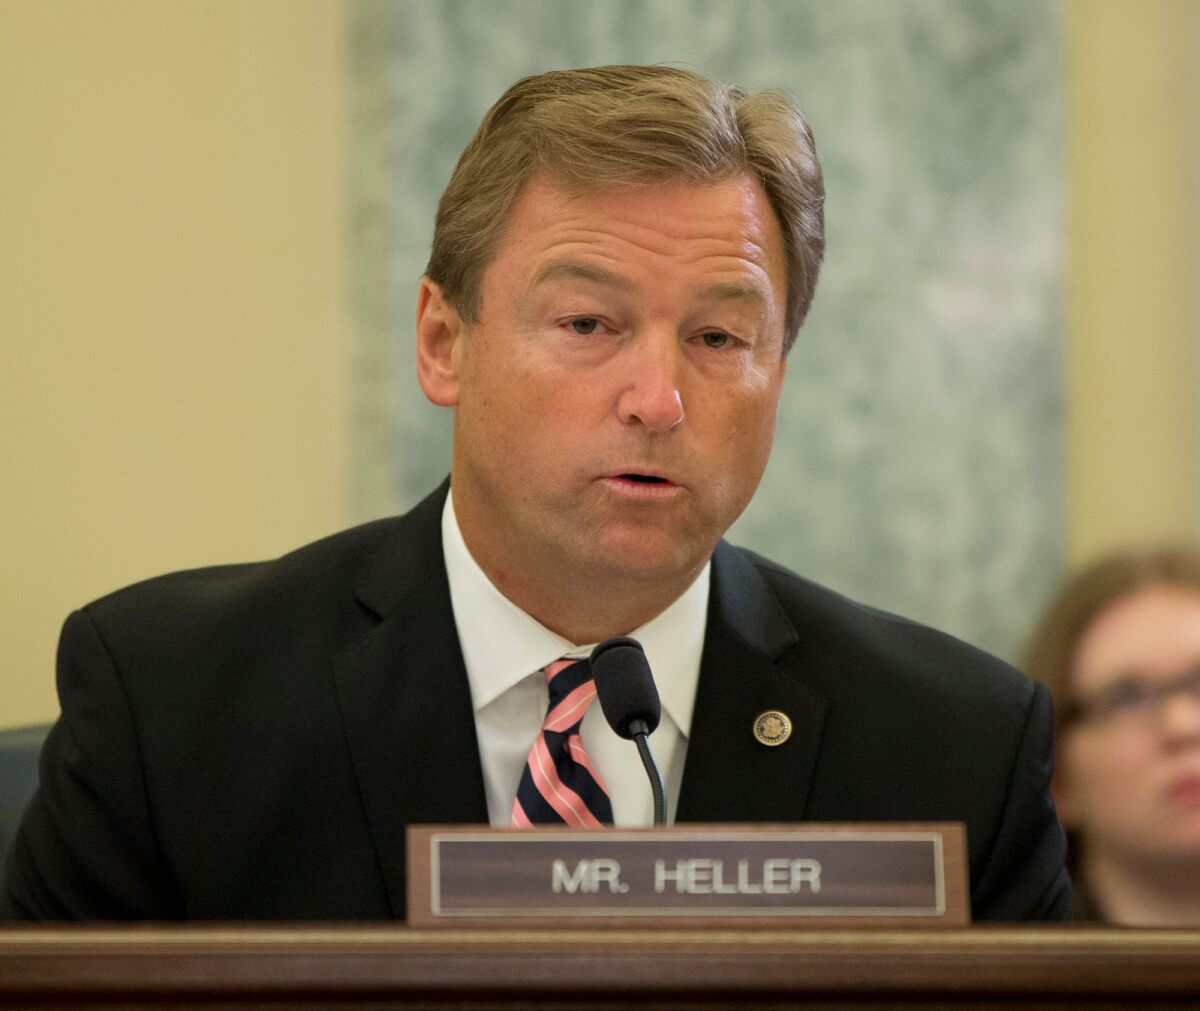 Senator Heller's Las Vegas Office Broken Into